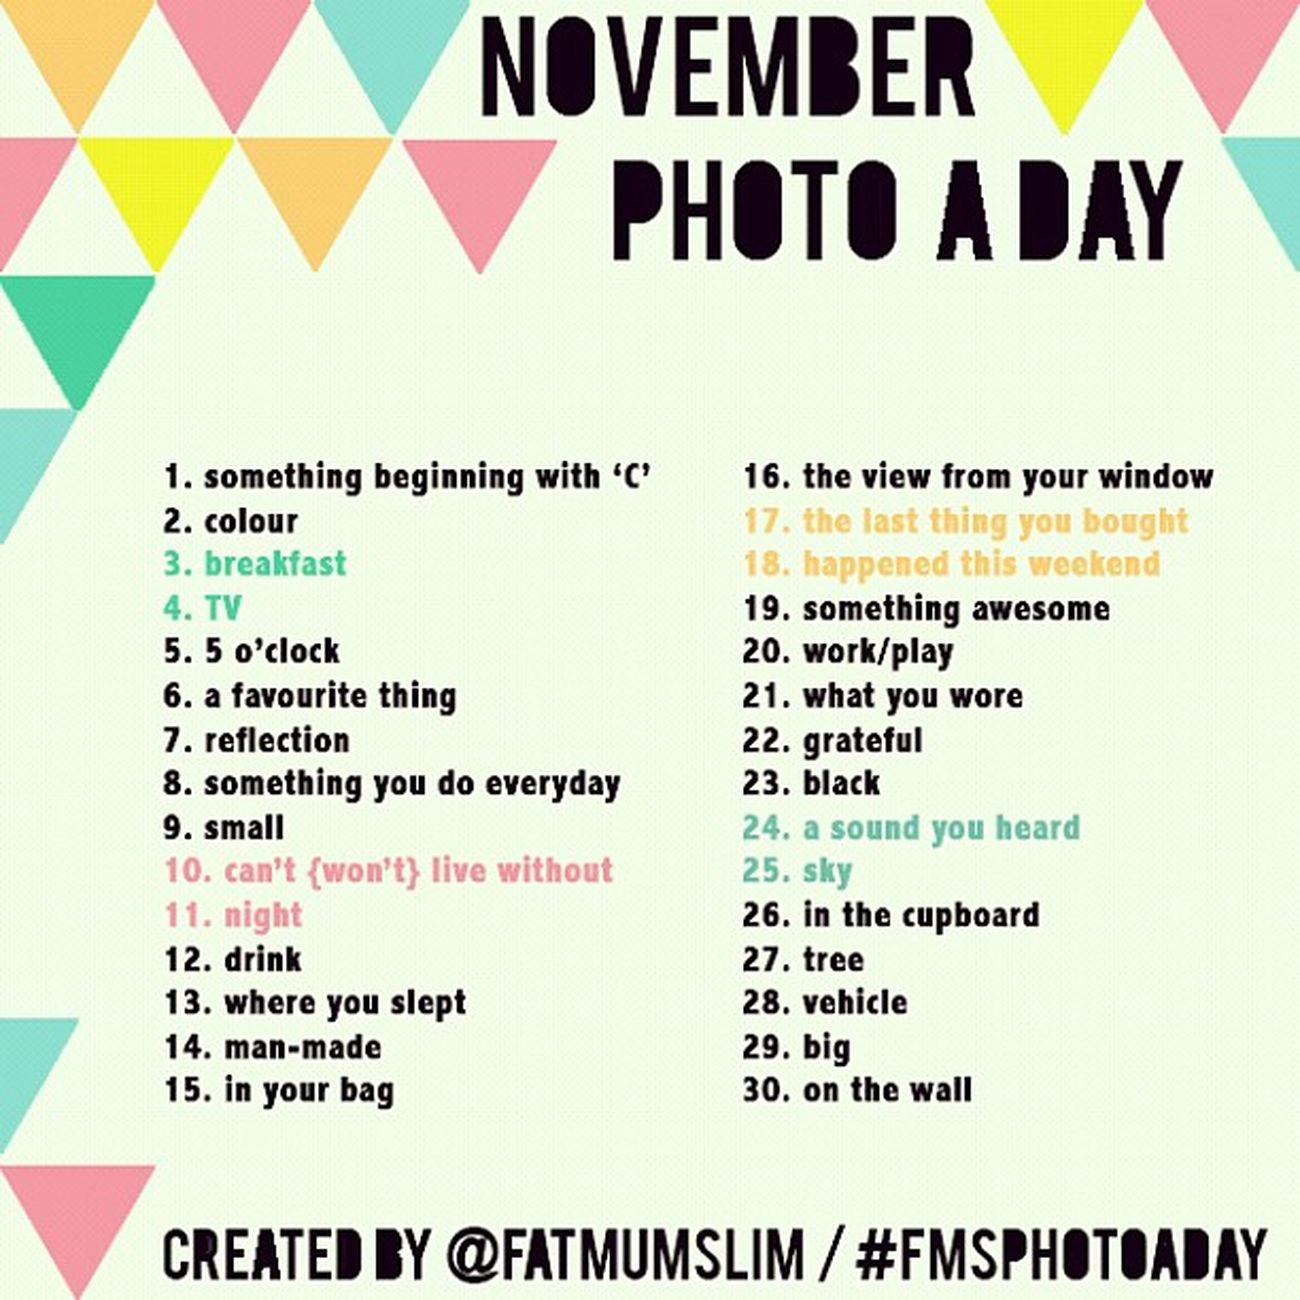 #november2012 #november #fmsphotoaday #photoaday November PhotoADay Fmsphotoaday November2012